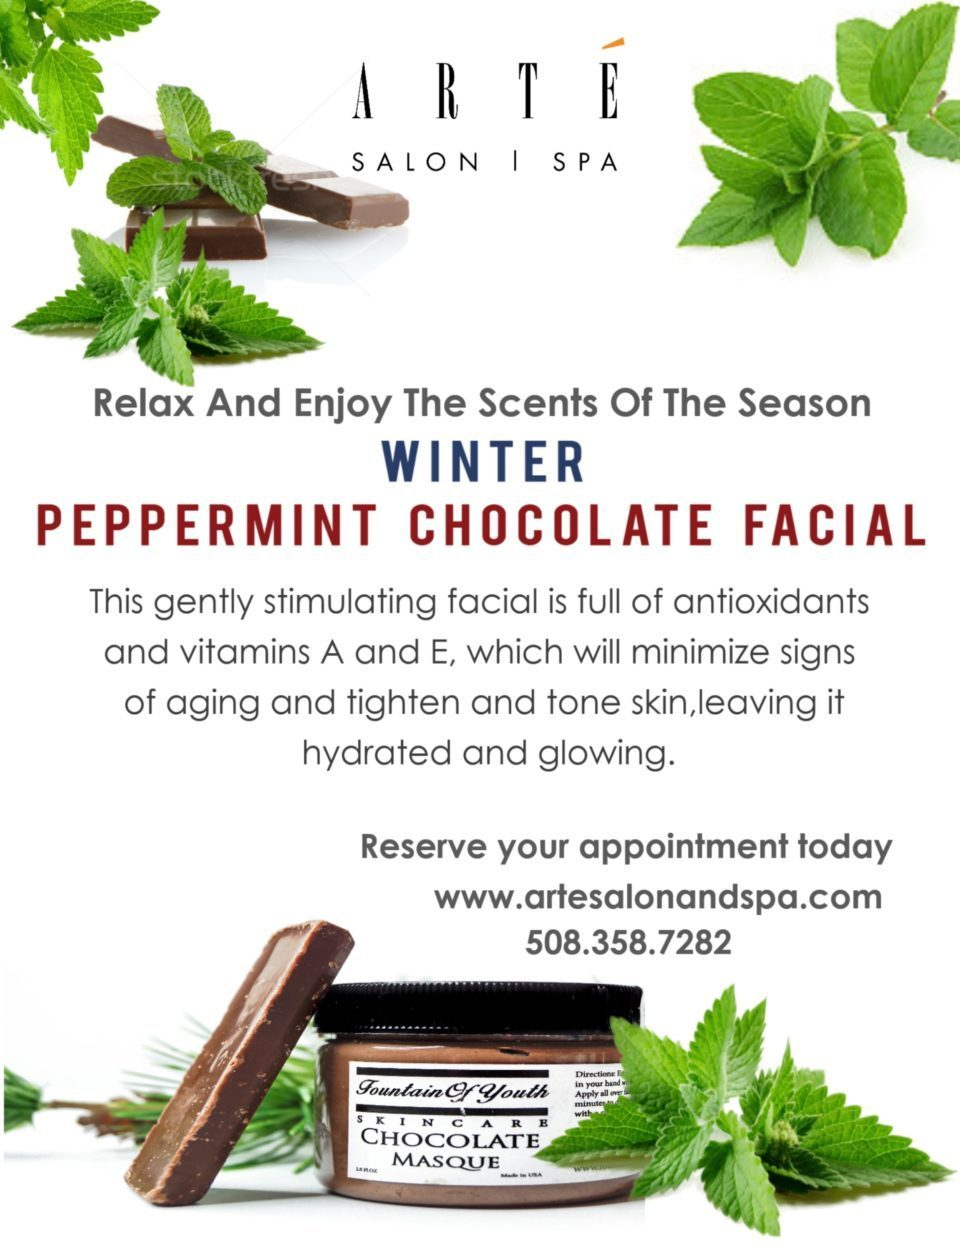 Peppermint Chocolate Facial